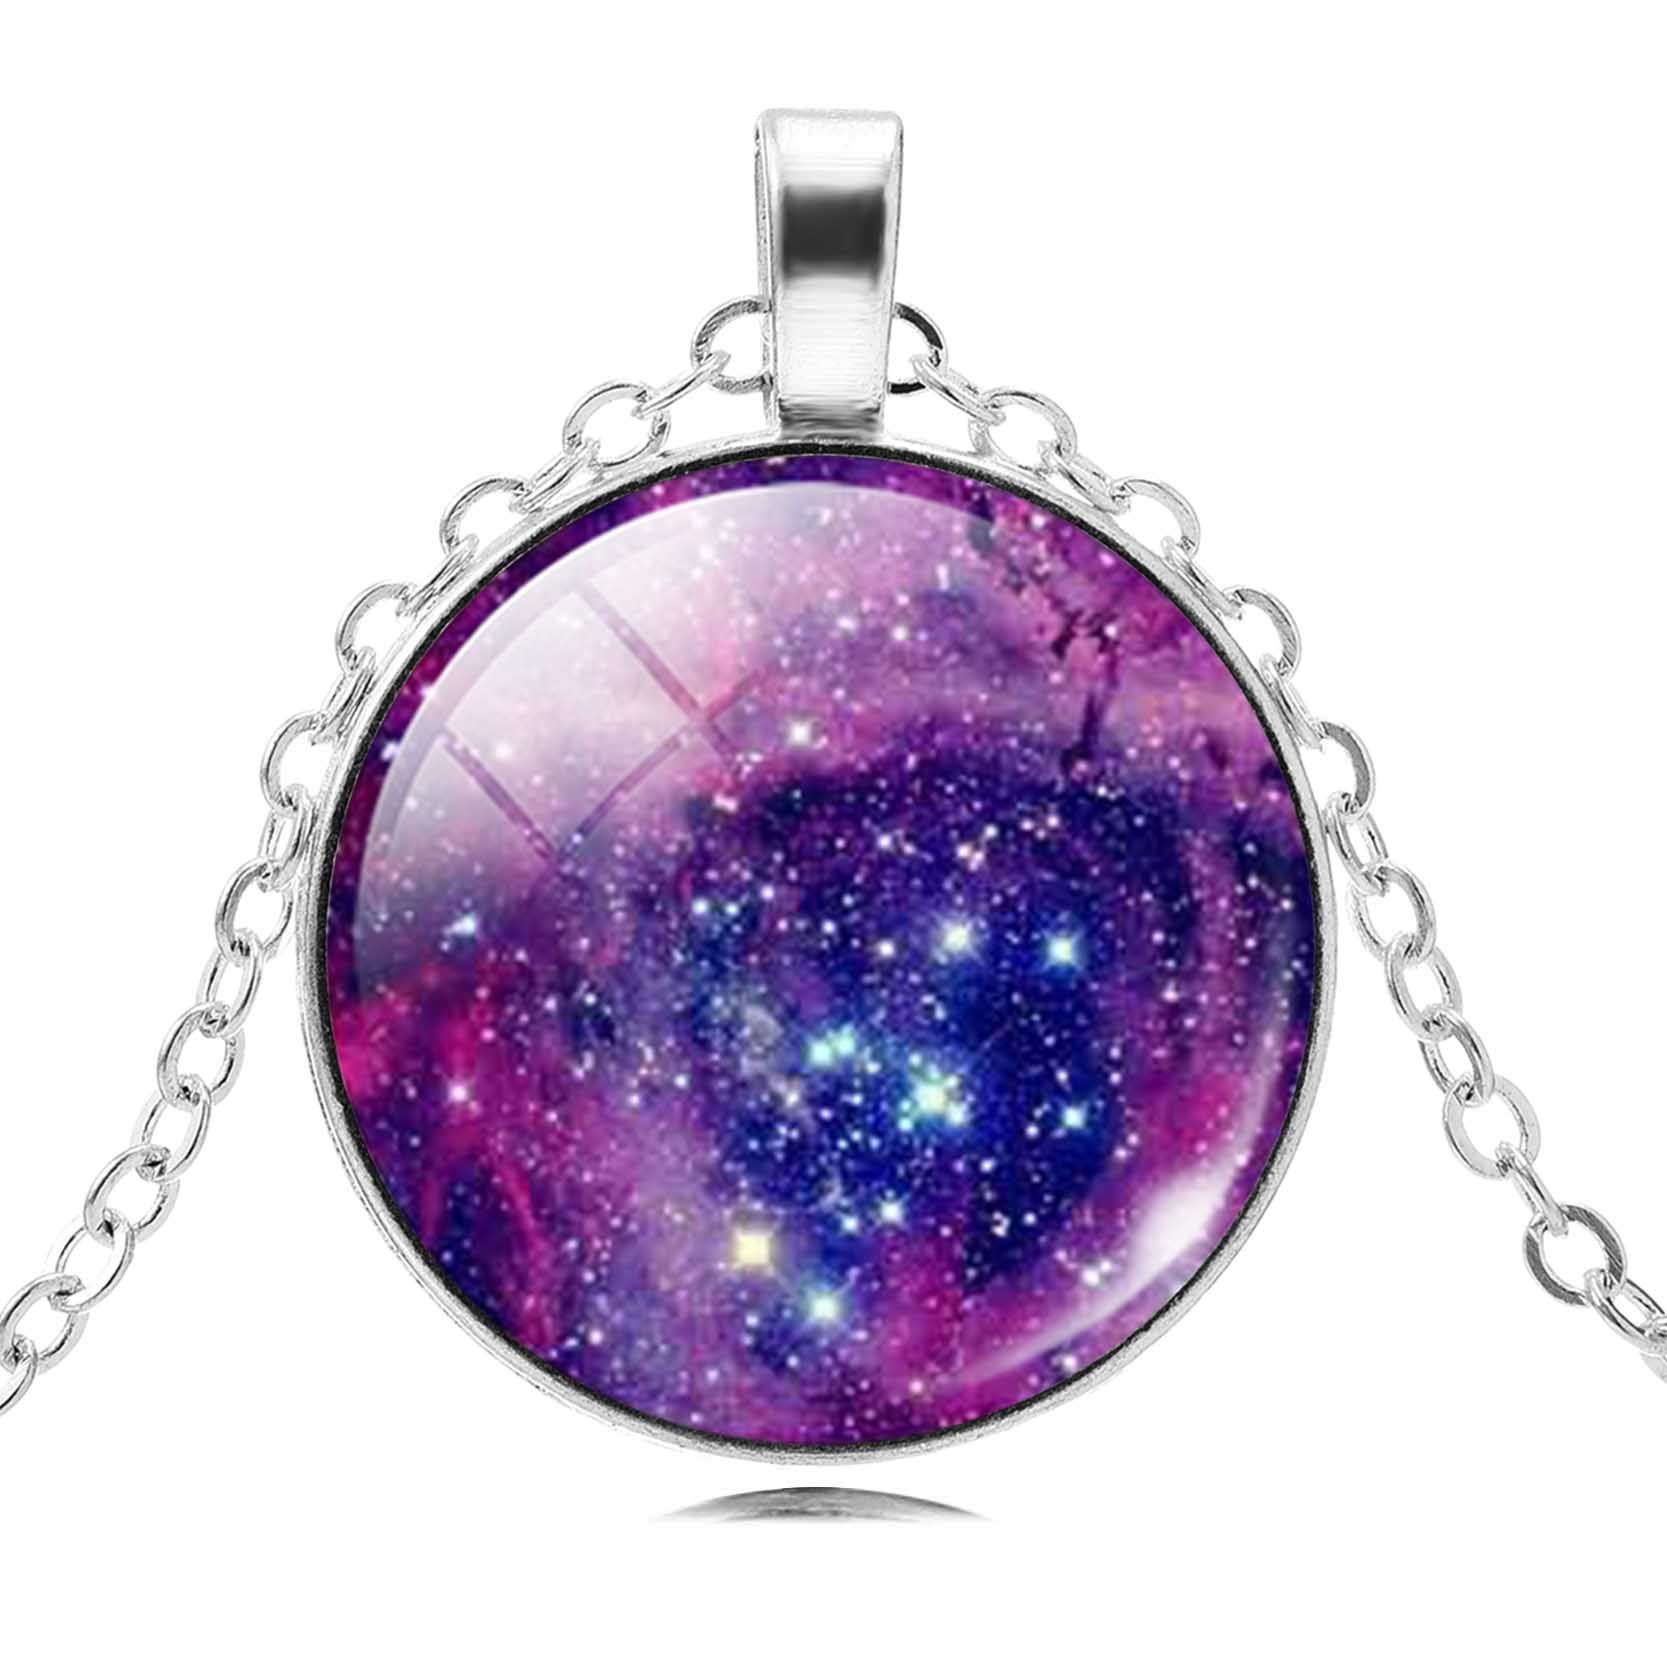 052a957a3b6fb1 2017 New Fashion Galaxy Jewelry for Women Gift Universe Pendant Necklace  Choker Necklace Silver Chain Glass Cabochon Maxi Anime